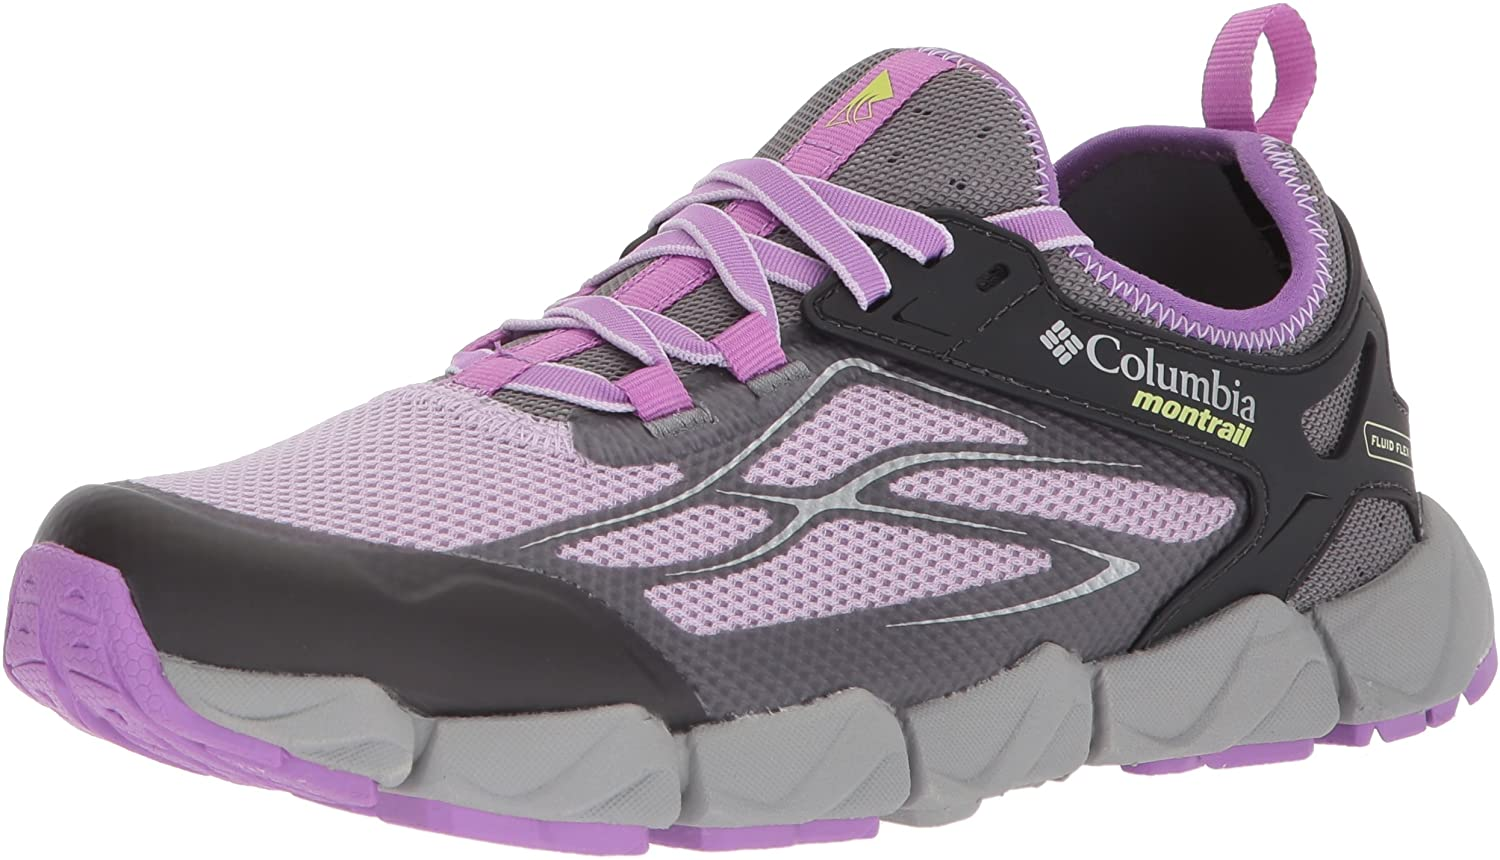 Columbia Women's Fluidflex X.S.R. Trail Running Shoe, Phantom Purple, Nappa Green, 5.5 B US